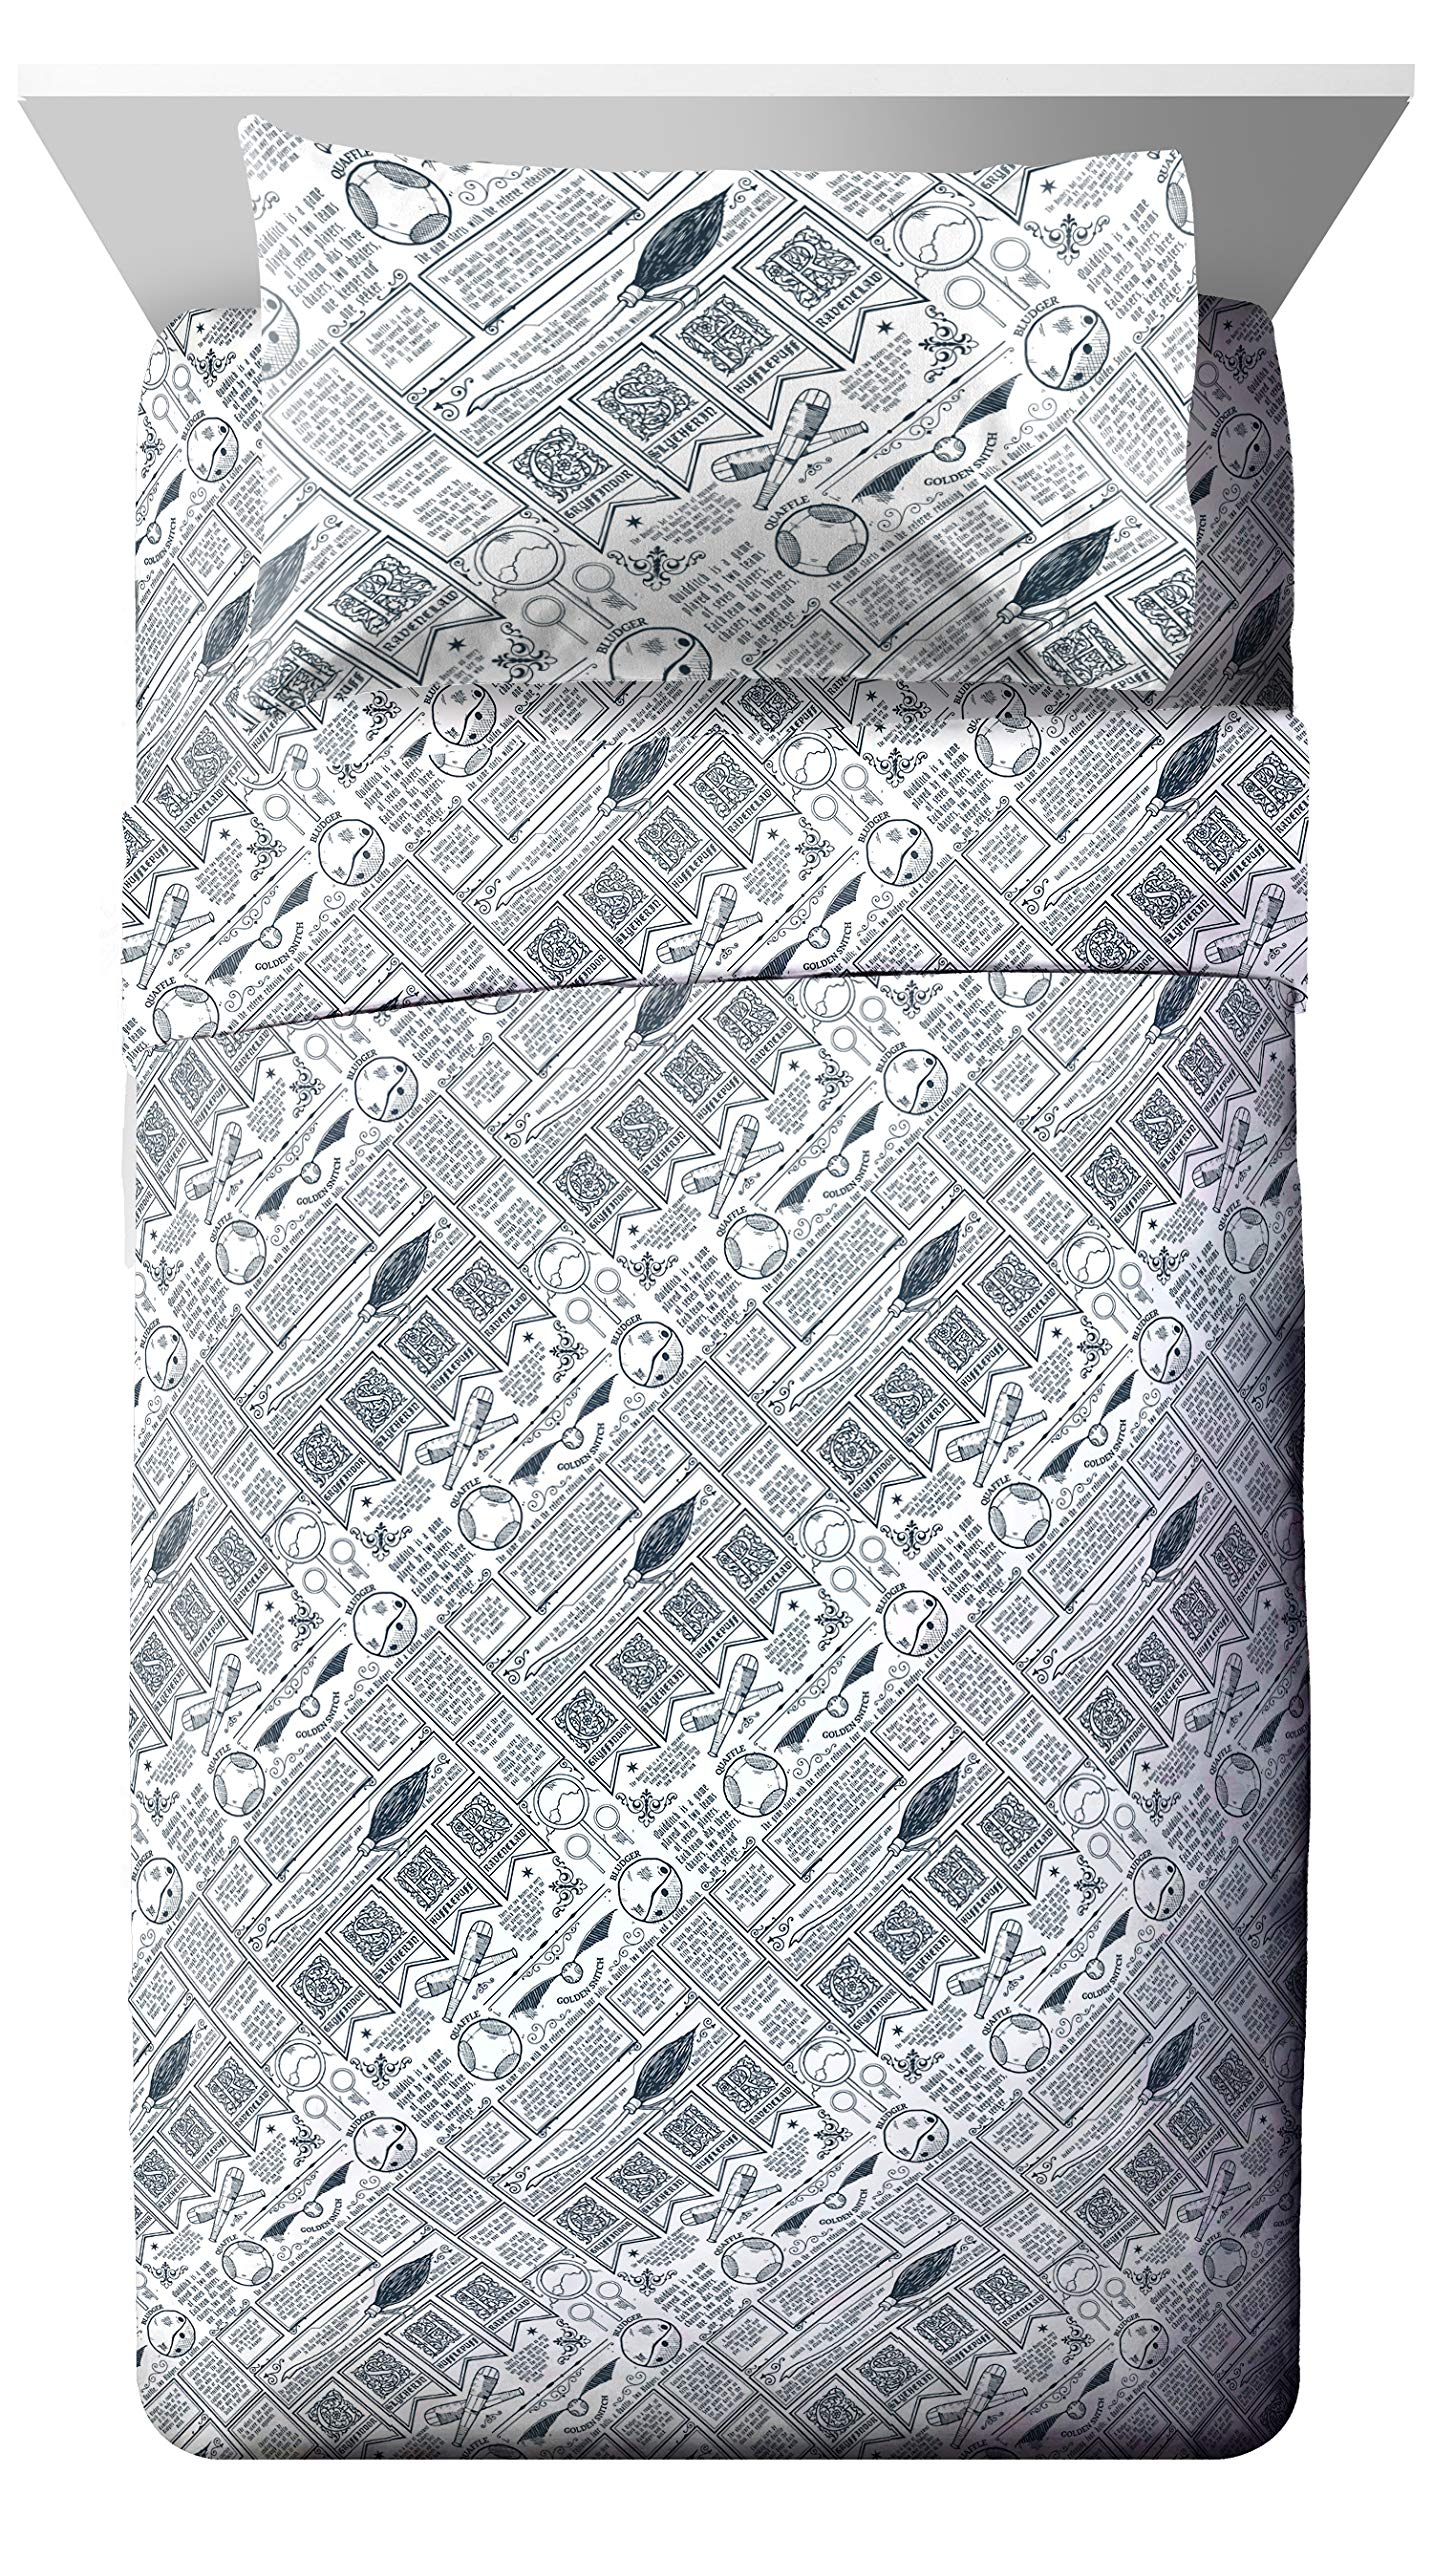 Jay Franco Harry Potter Draco Dormiens Twin Sheet Set - 3 Piece Set Super Soft and Cozy Kid's Bedding - Fade Resistant Polyester Microfiber Sheets (Official Harry Potter Product)